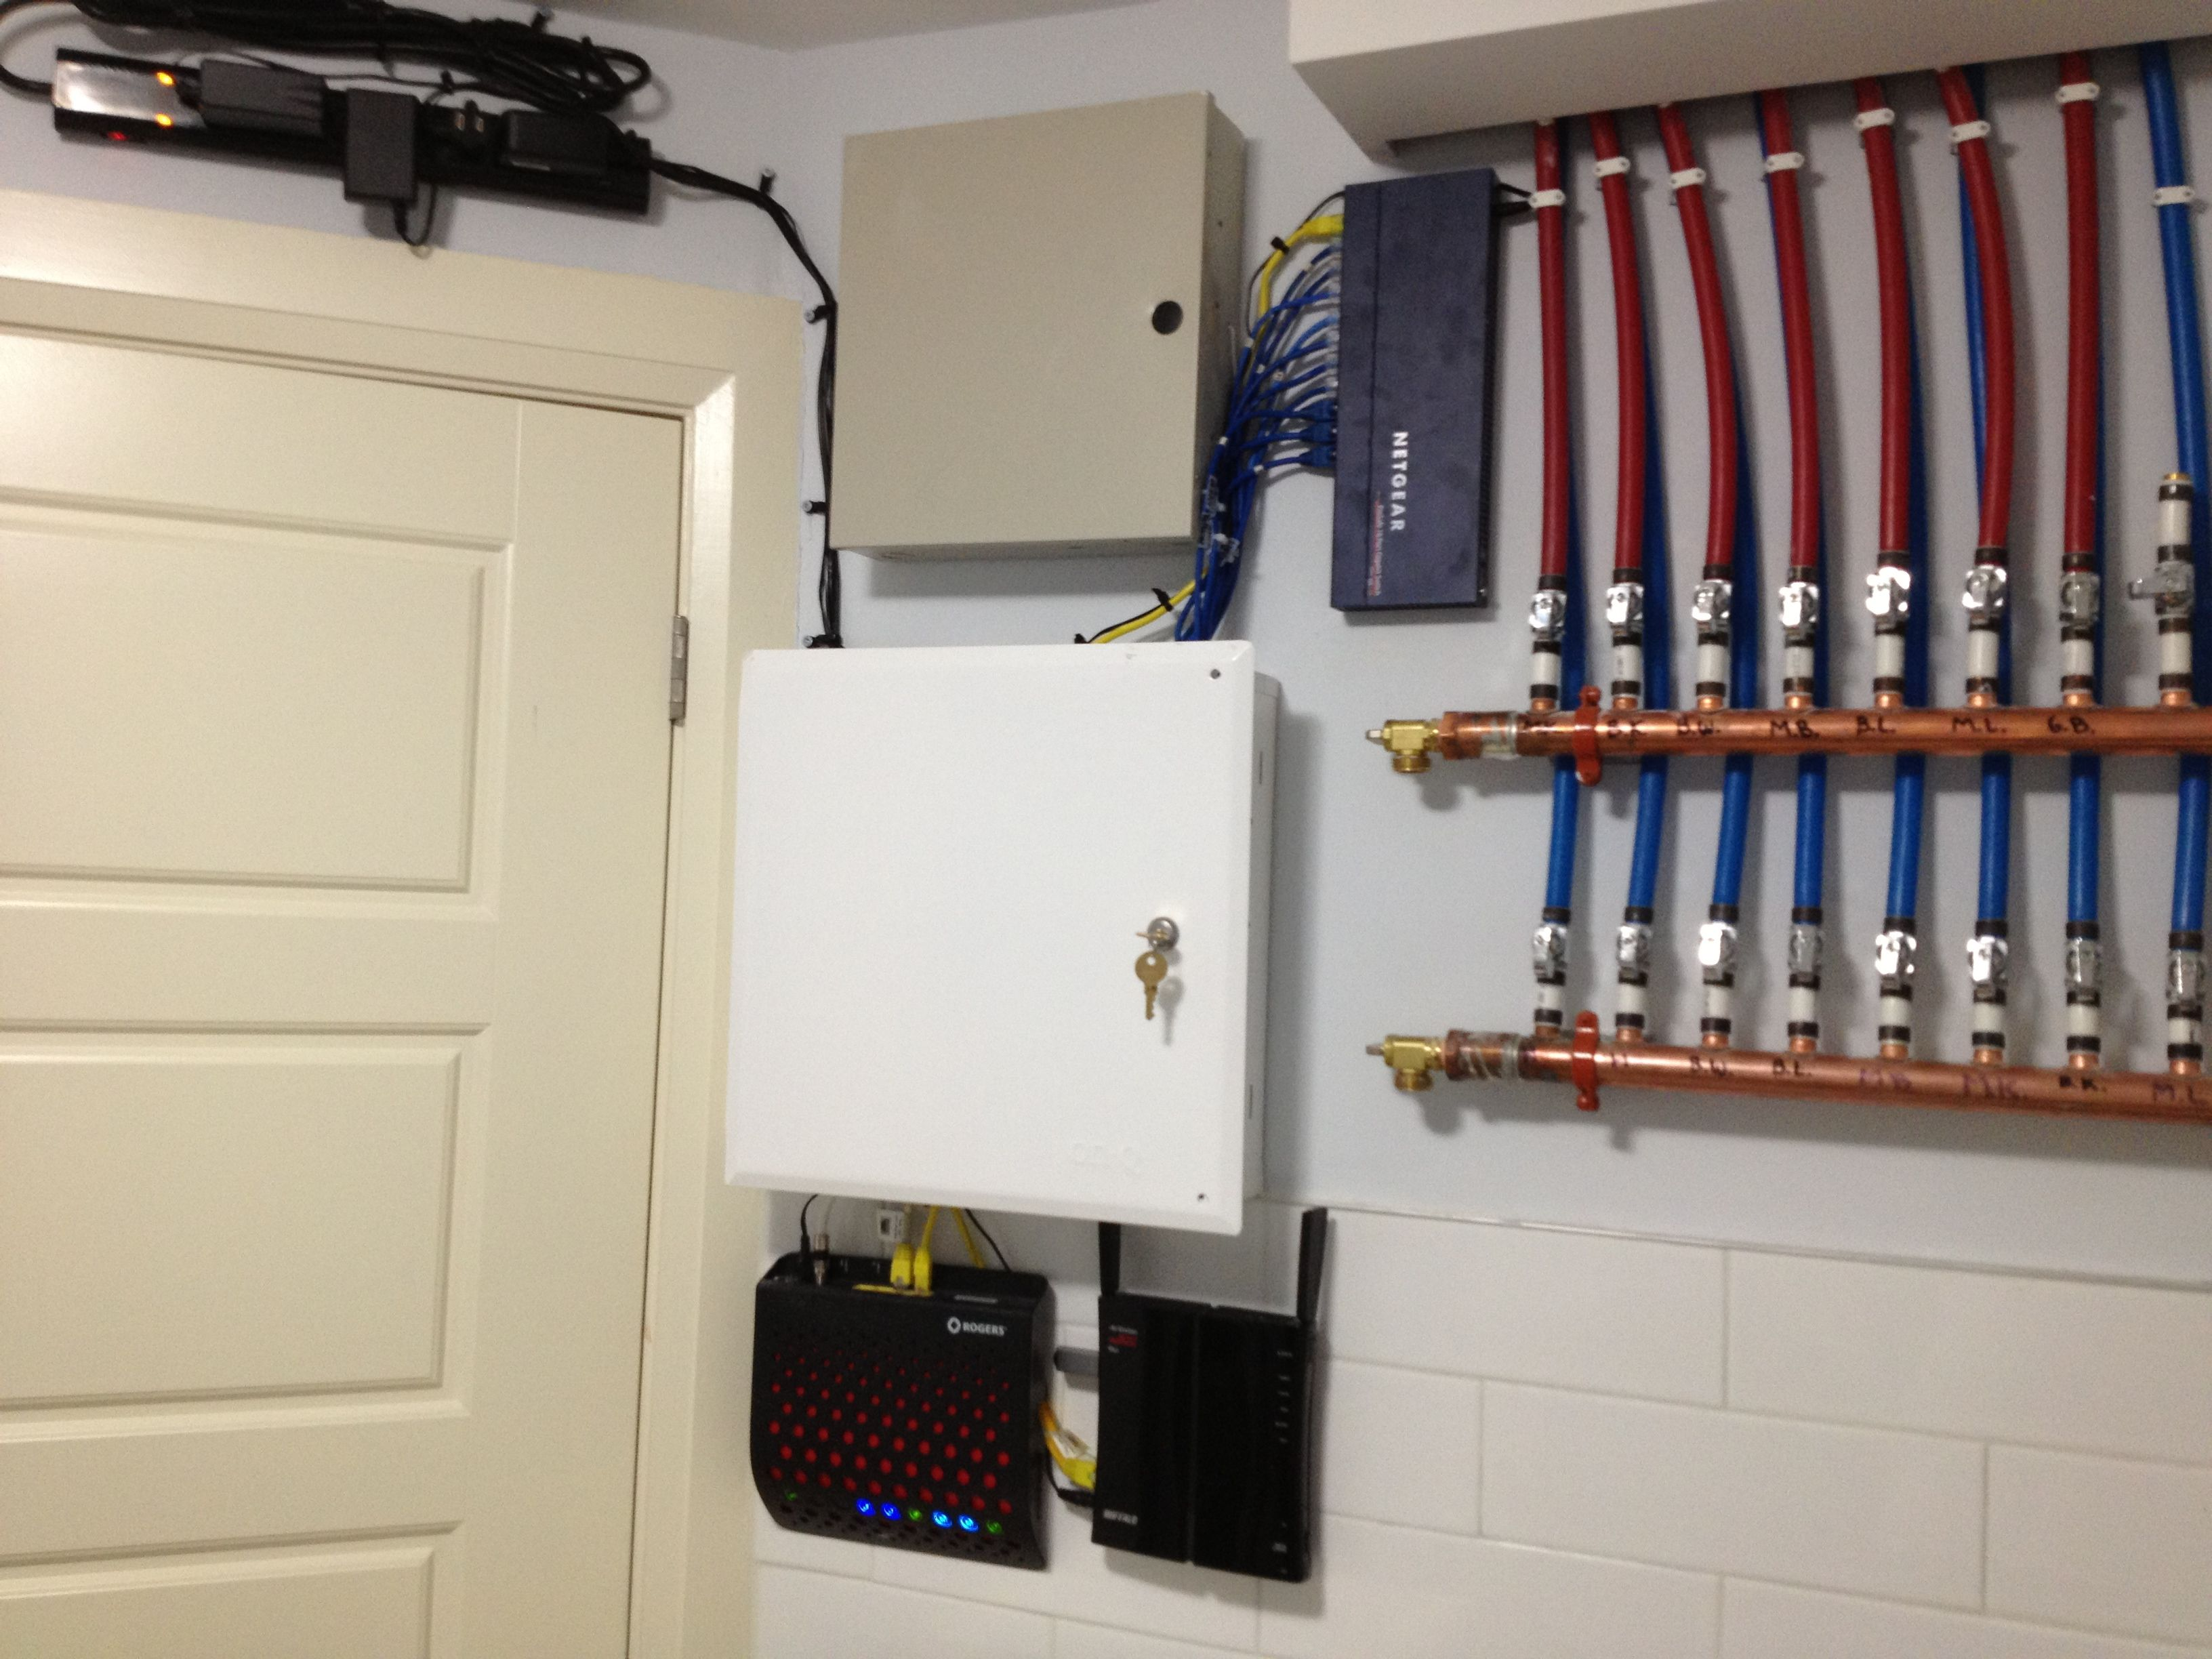 Network Wiring Service Toronto Smart home automation